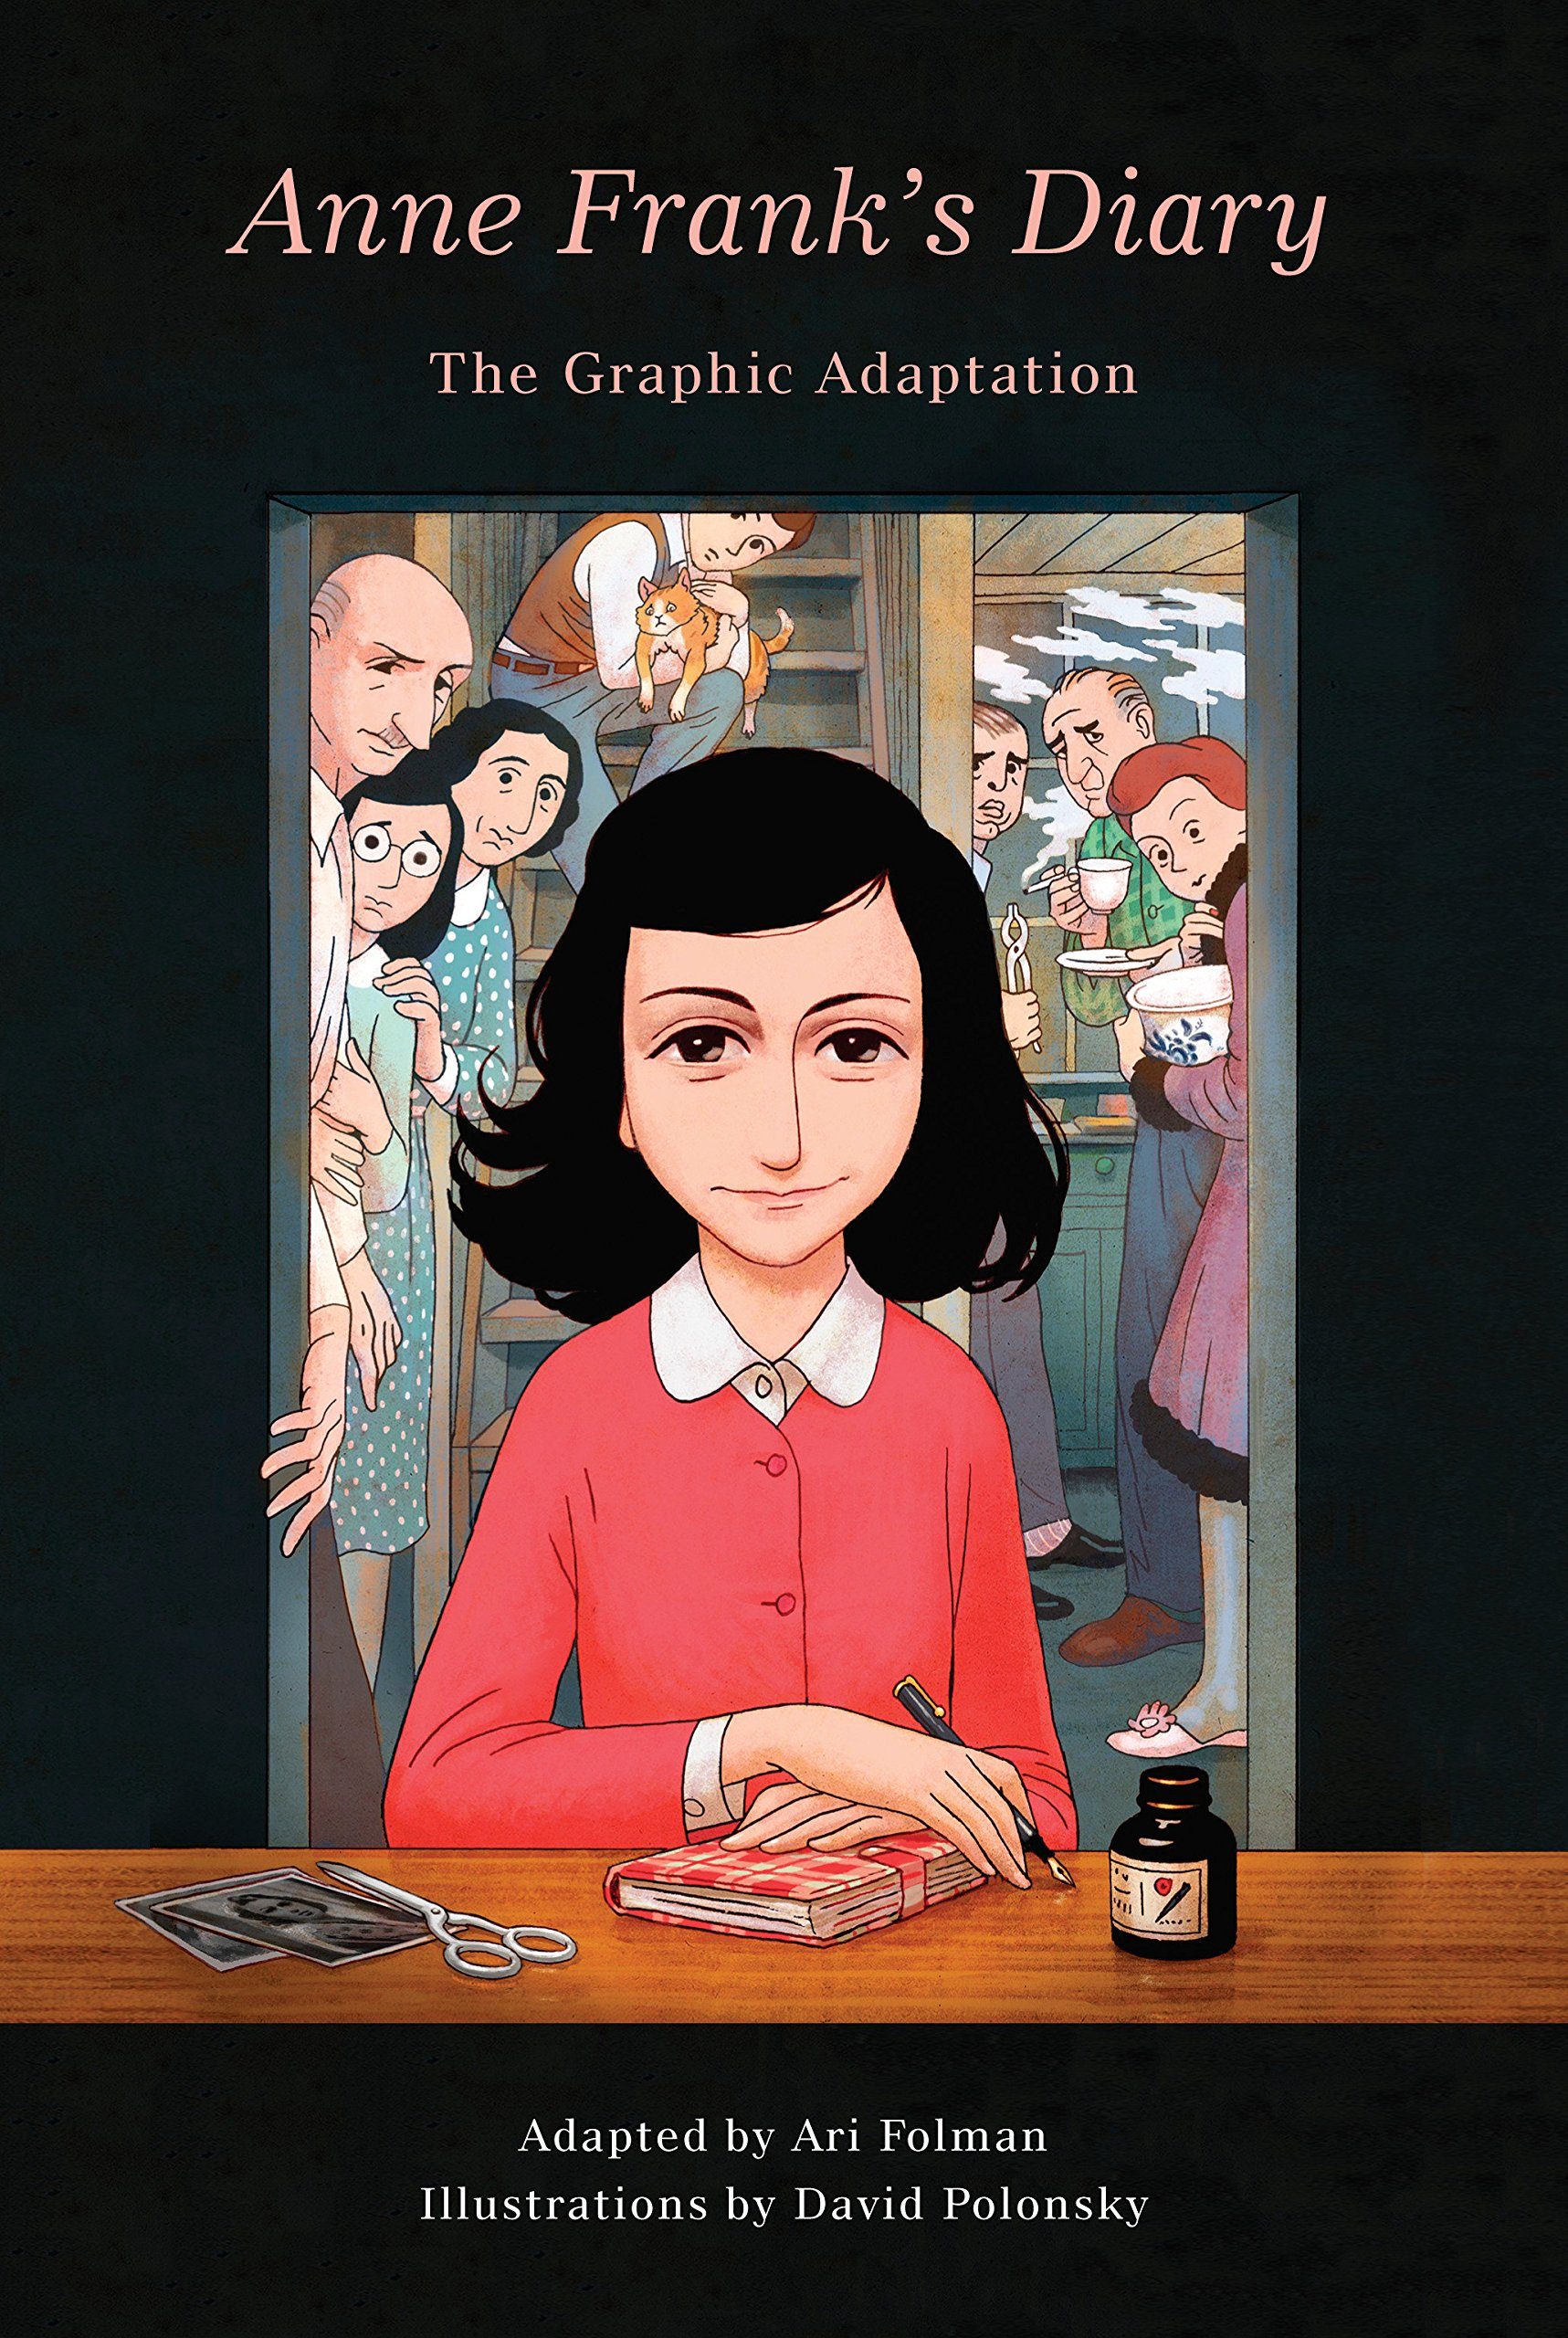 Anne Frank's Diary- The Graphic Adaptation by Anne Frank, adapted by Ari Folman and illustrated by David Polonsky